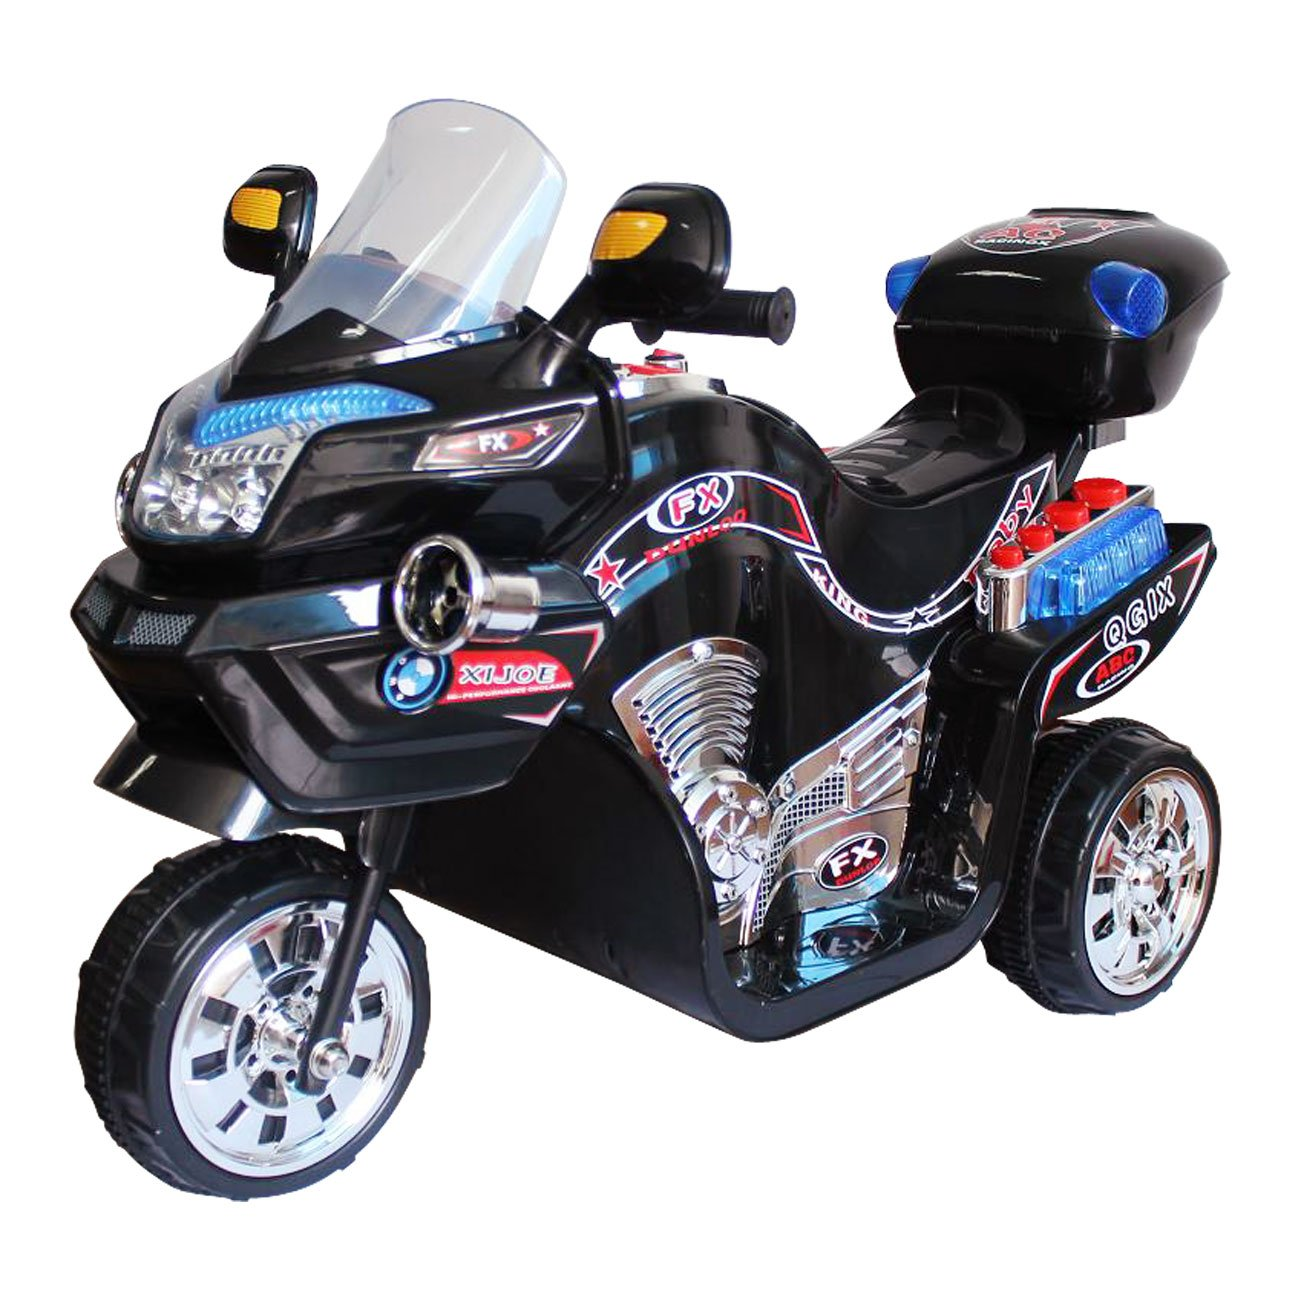 71sebF1jjFL._SL1300_ amazon com ride on toy, 3 wheel motorcycle for kids, battery  at love-stories.co